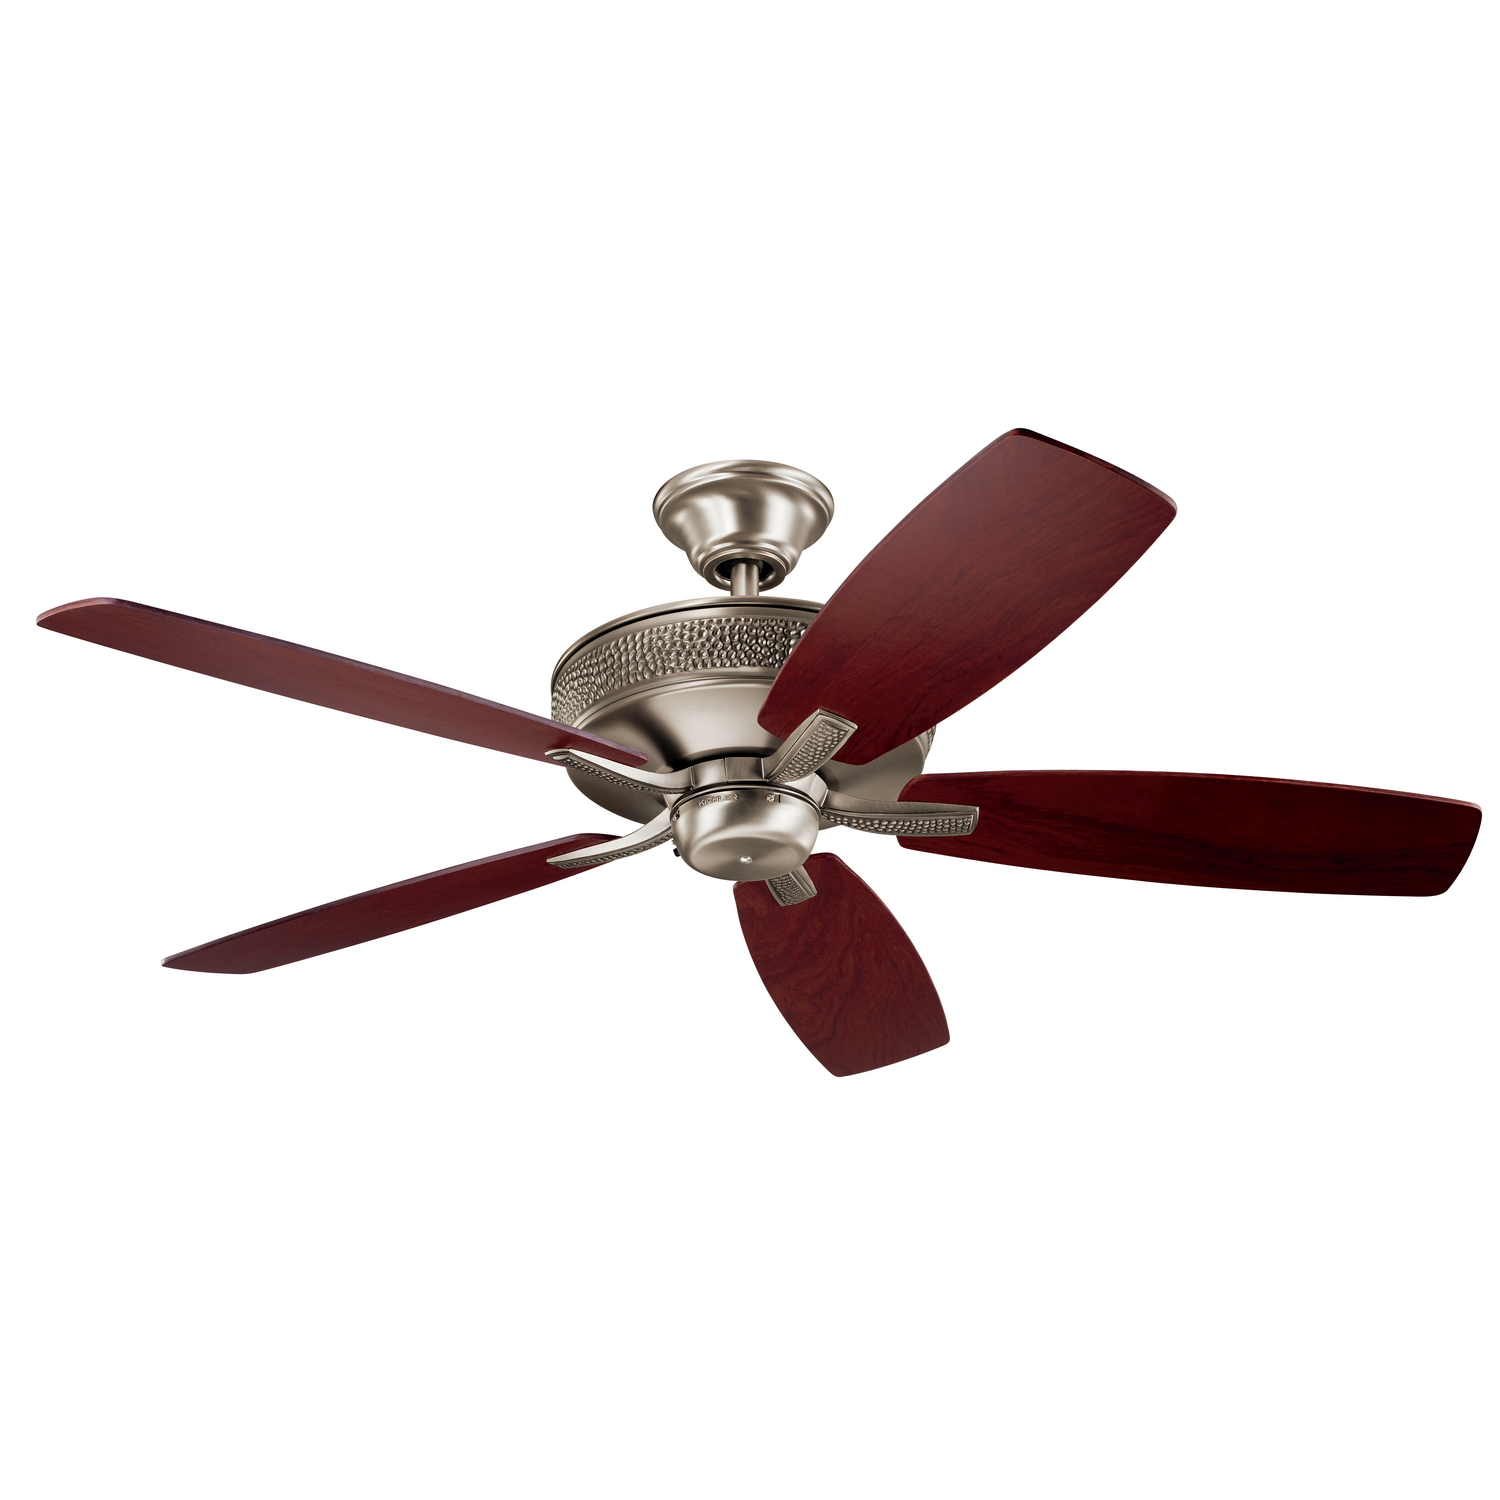 52 inchCeiling Fan from the II collection by Kichler 339013BAP7